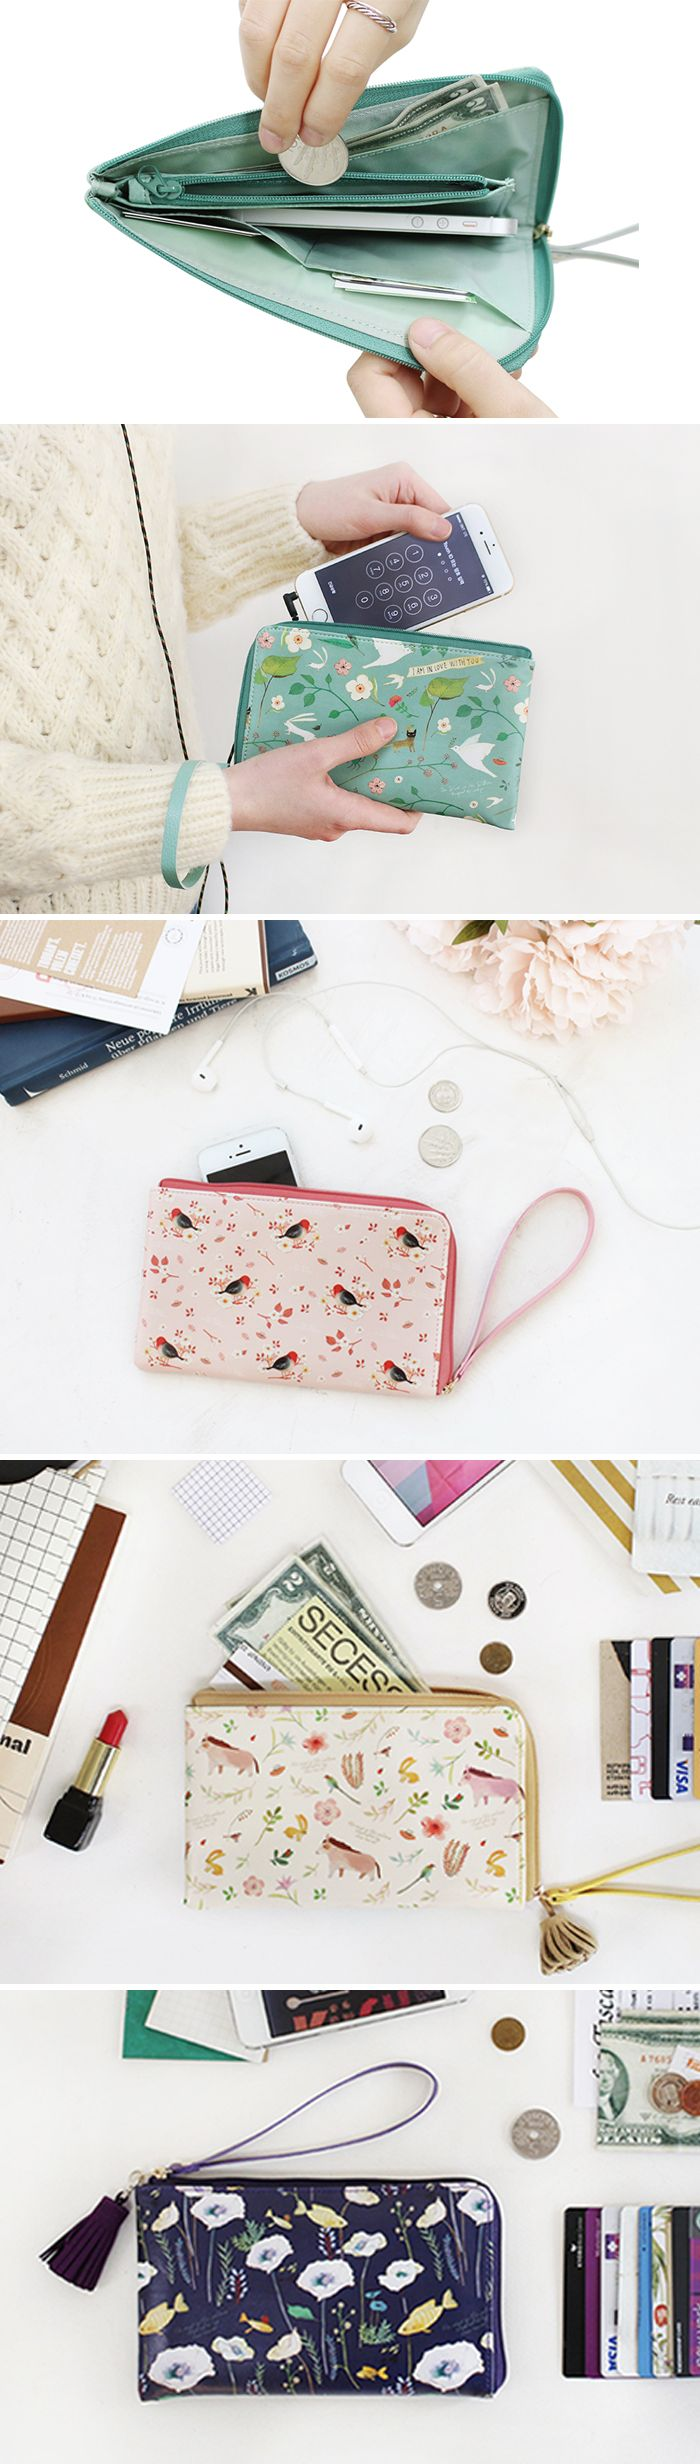 I can't leave my house without this! The Willow Story Smartphone Wallet is officially the cutest way to carry your necessities! It includes 2 card pockets, a coin section, & a pocket for bills. The main compartment is big & flexible enough to hold any smartphone as well as keys, makeup, or other items you may need on the go! It's super light & even has a wrist strap! Plus, the beautiful designs make it a fashion must-have. This is what I need for dates & girls' nights out. Grab one for…